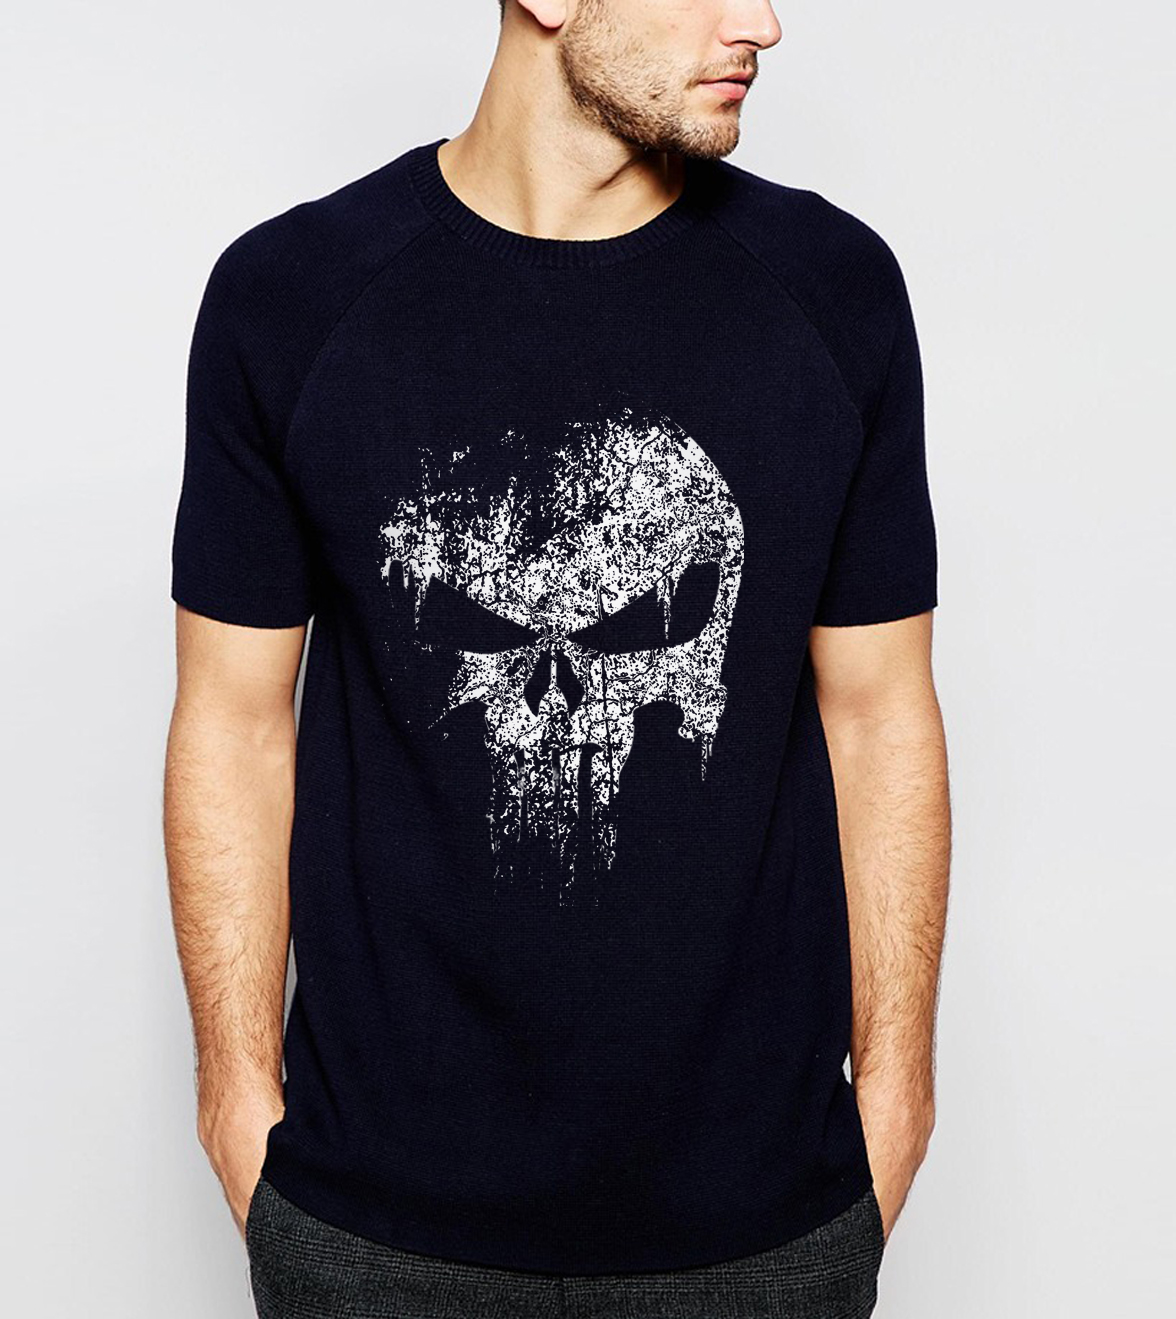 Supper Hero Series Skull personality   t     shirts   2019 Summer casual hipster 100% Cotton High Quality hip hop tops tees